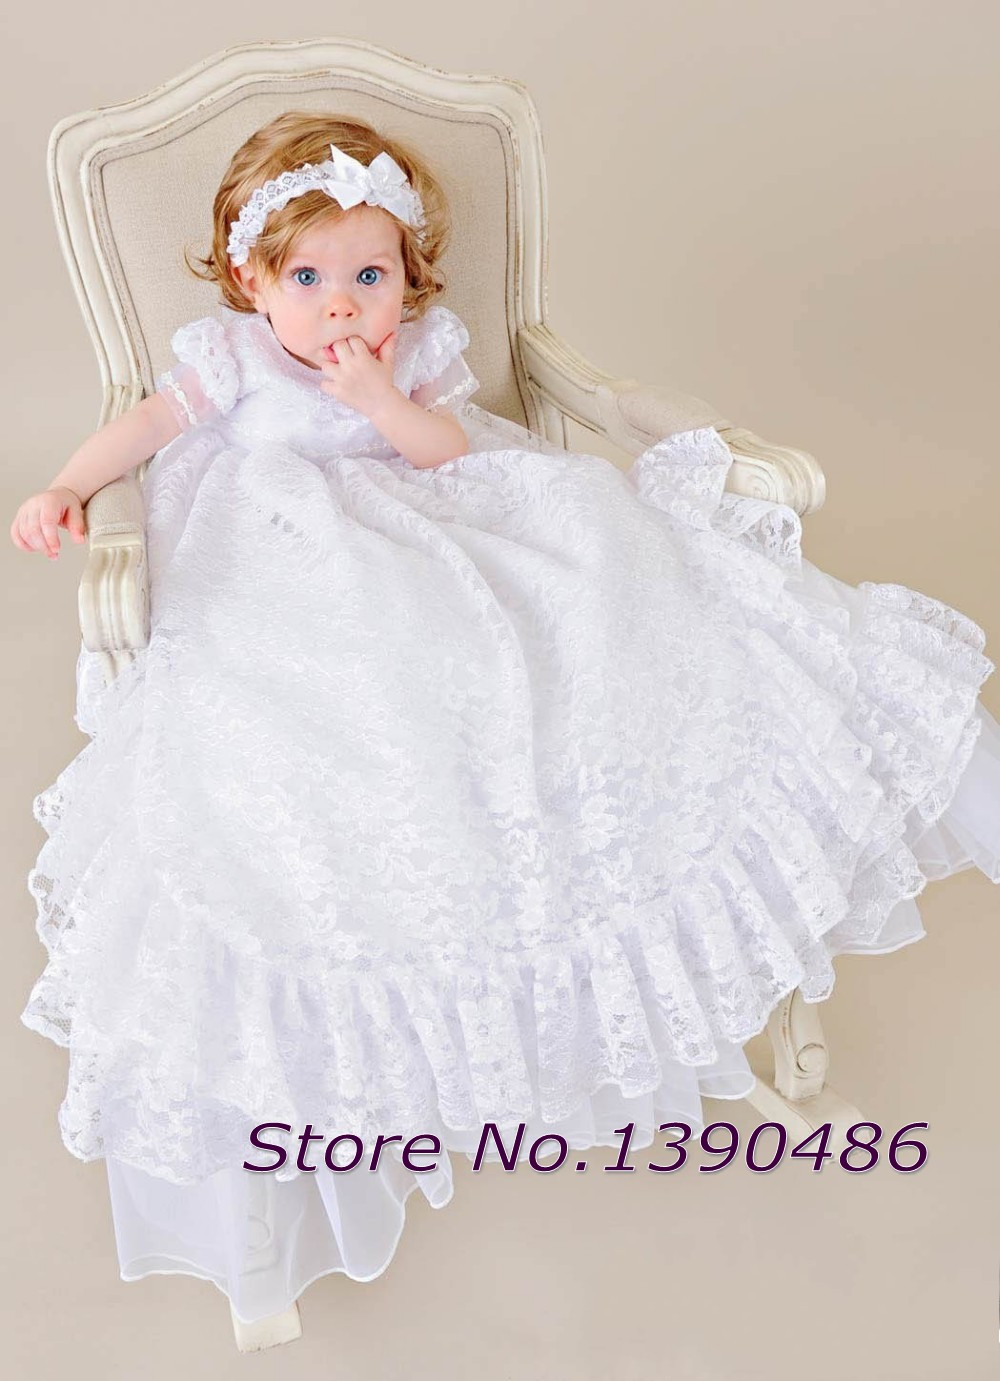 Baptism Gown Toddler Boy | RLDM